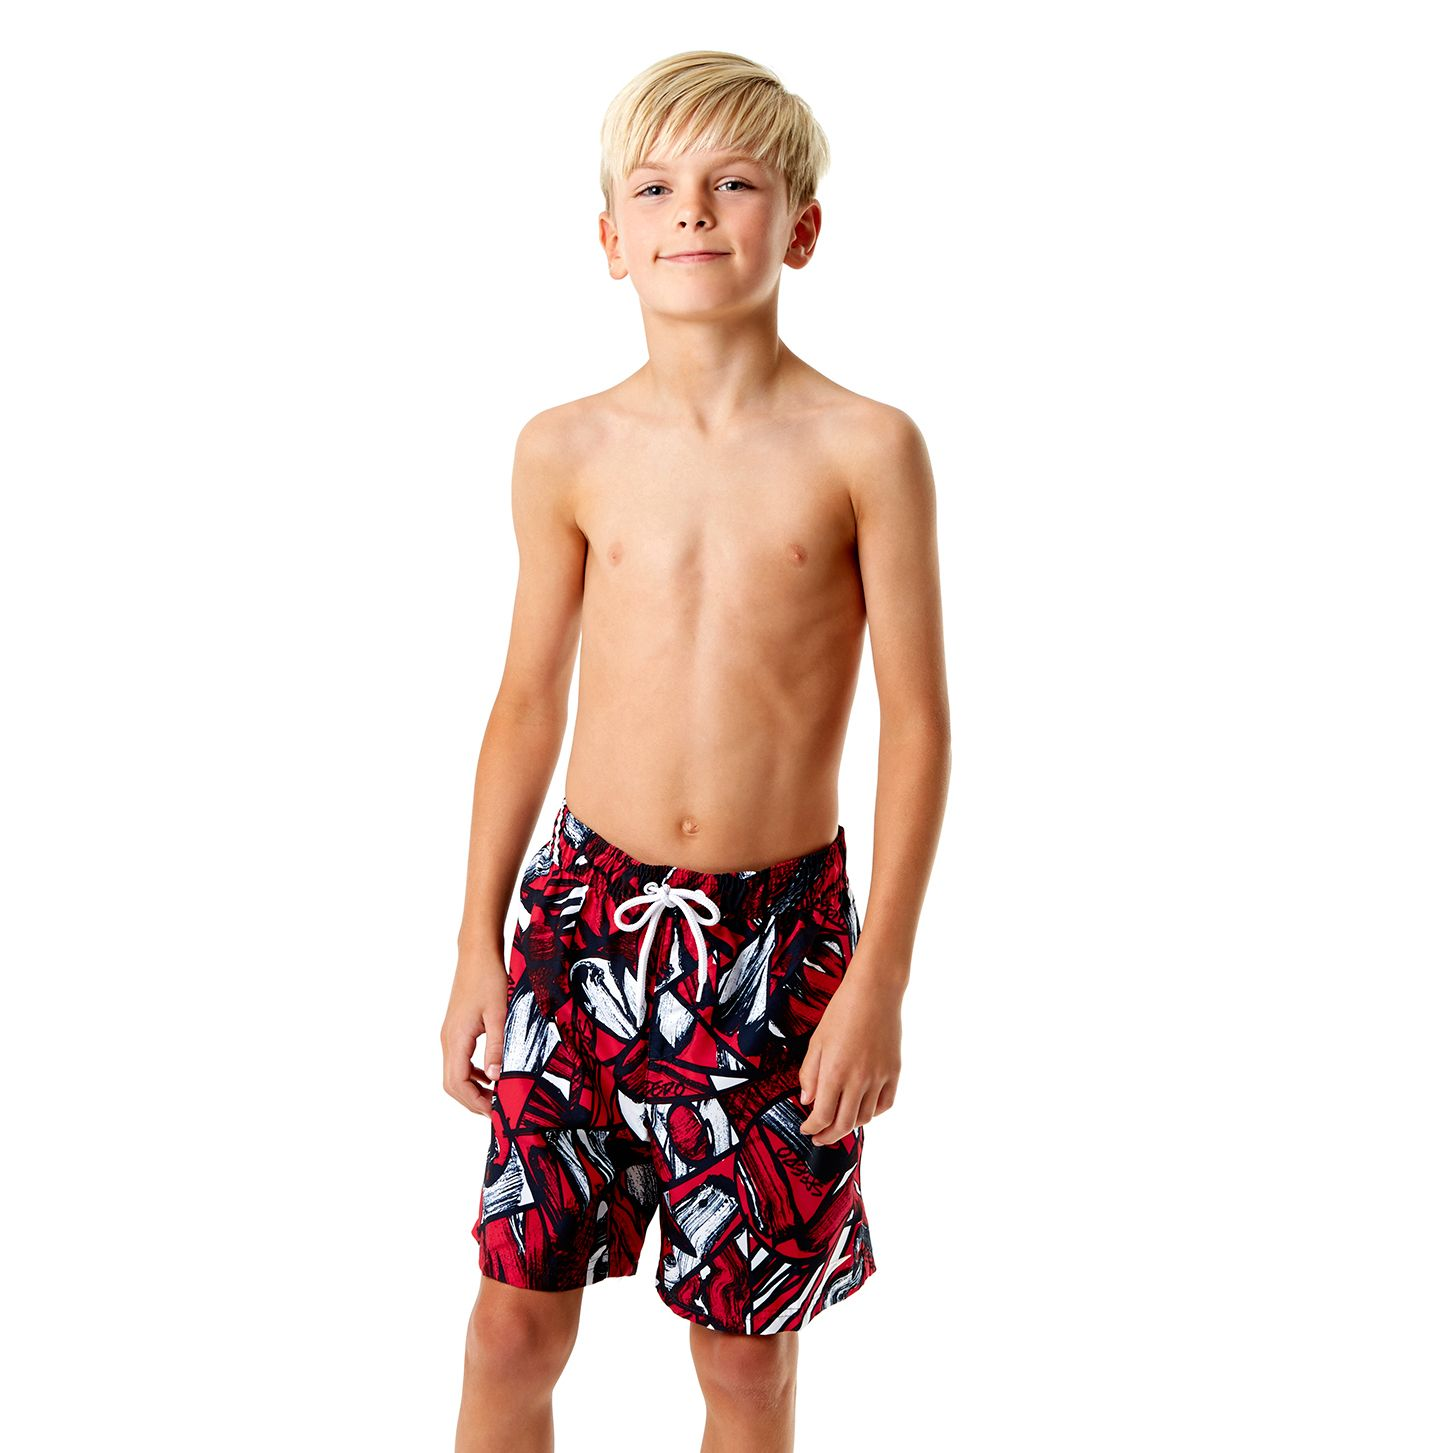 Speedo Printed Leisure 15 Inch Boys Watershorts - Black/Red, M - Everything Sports.